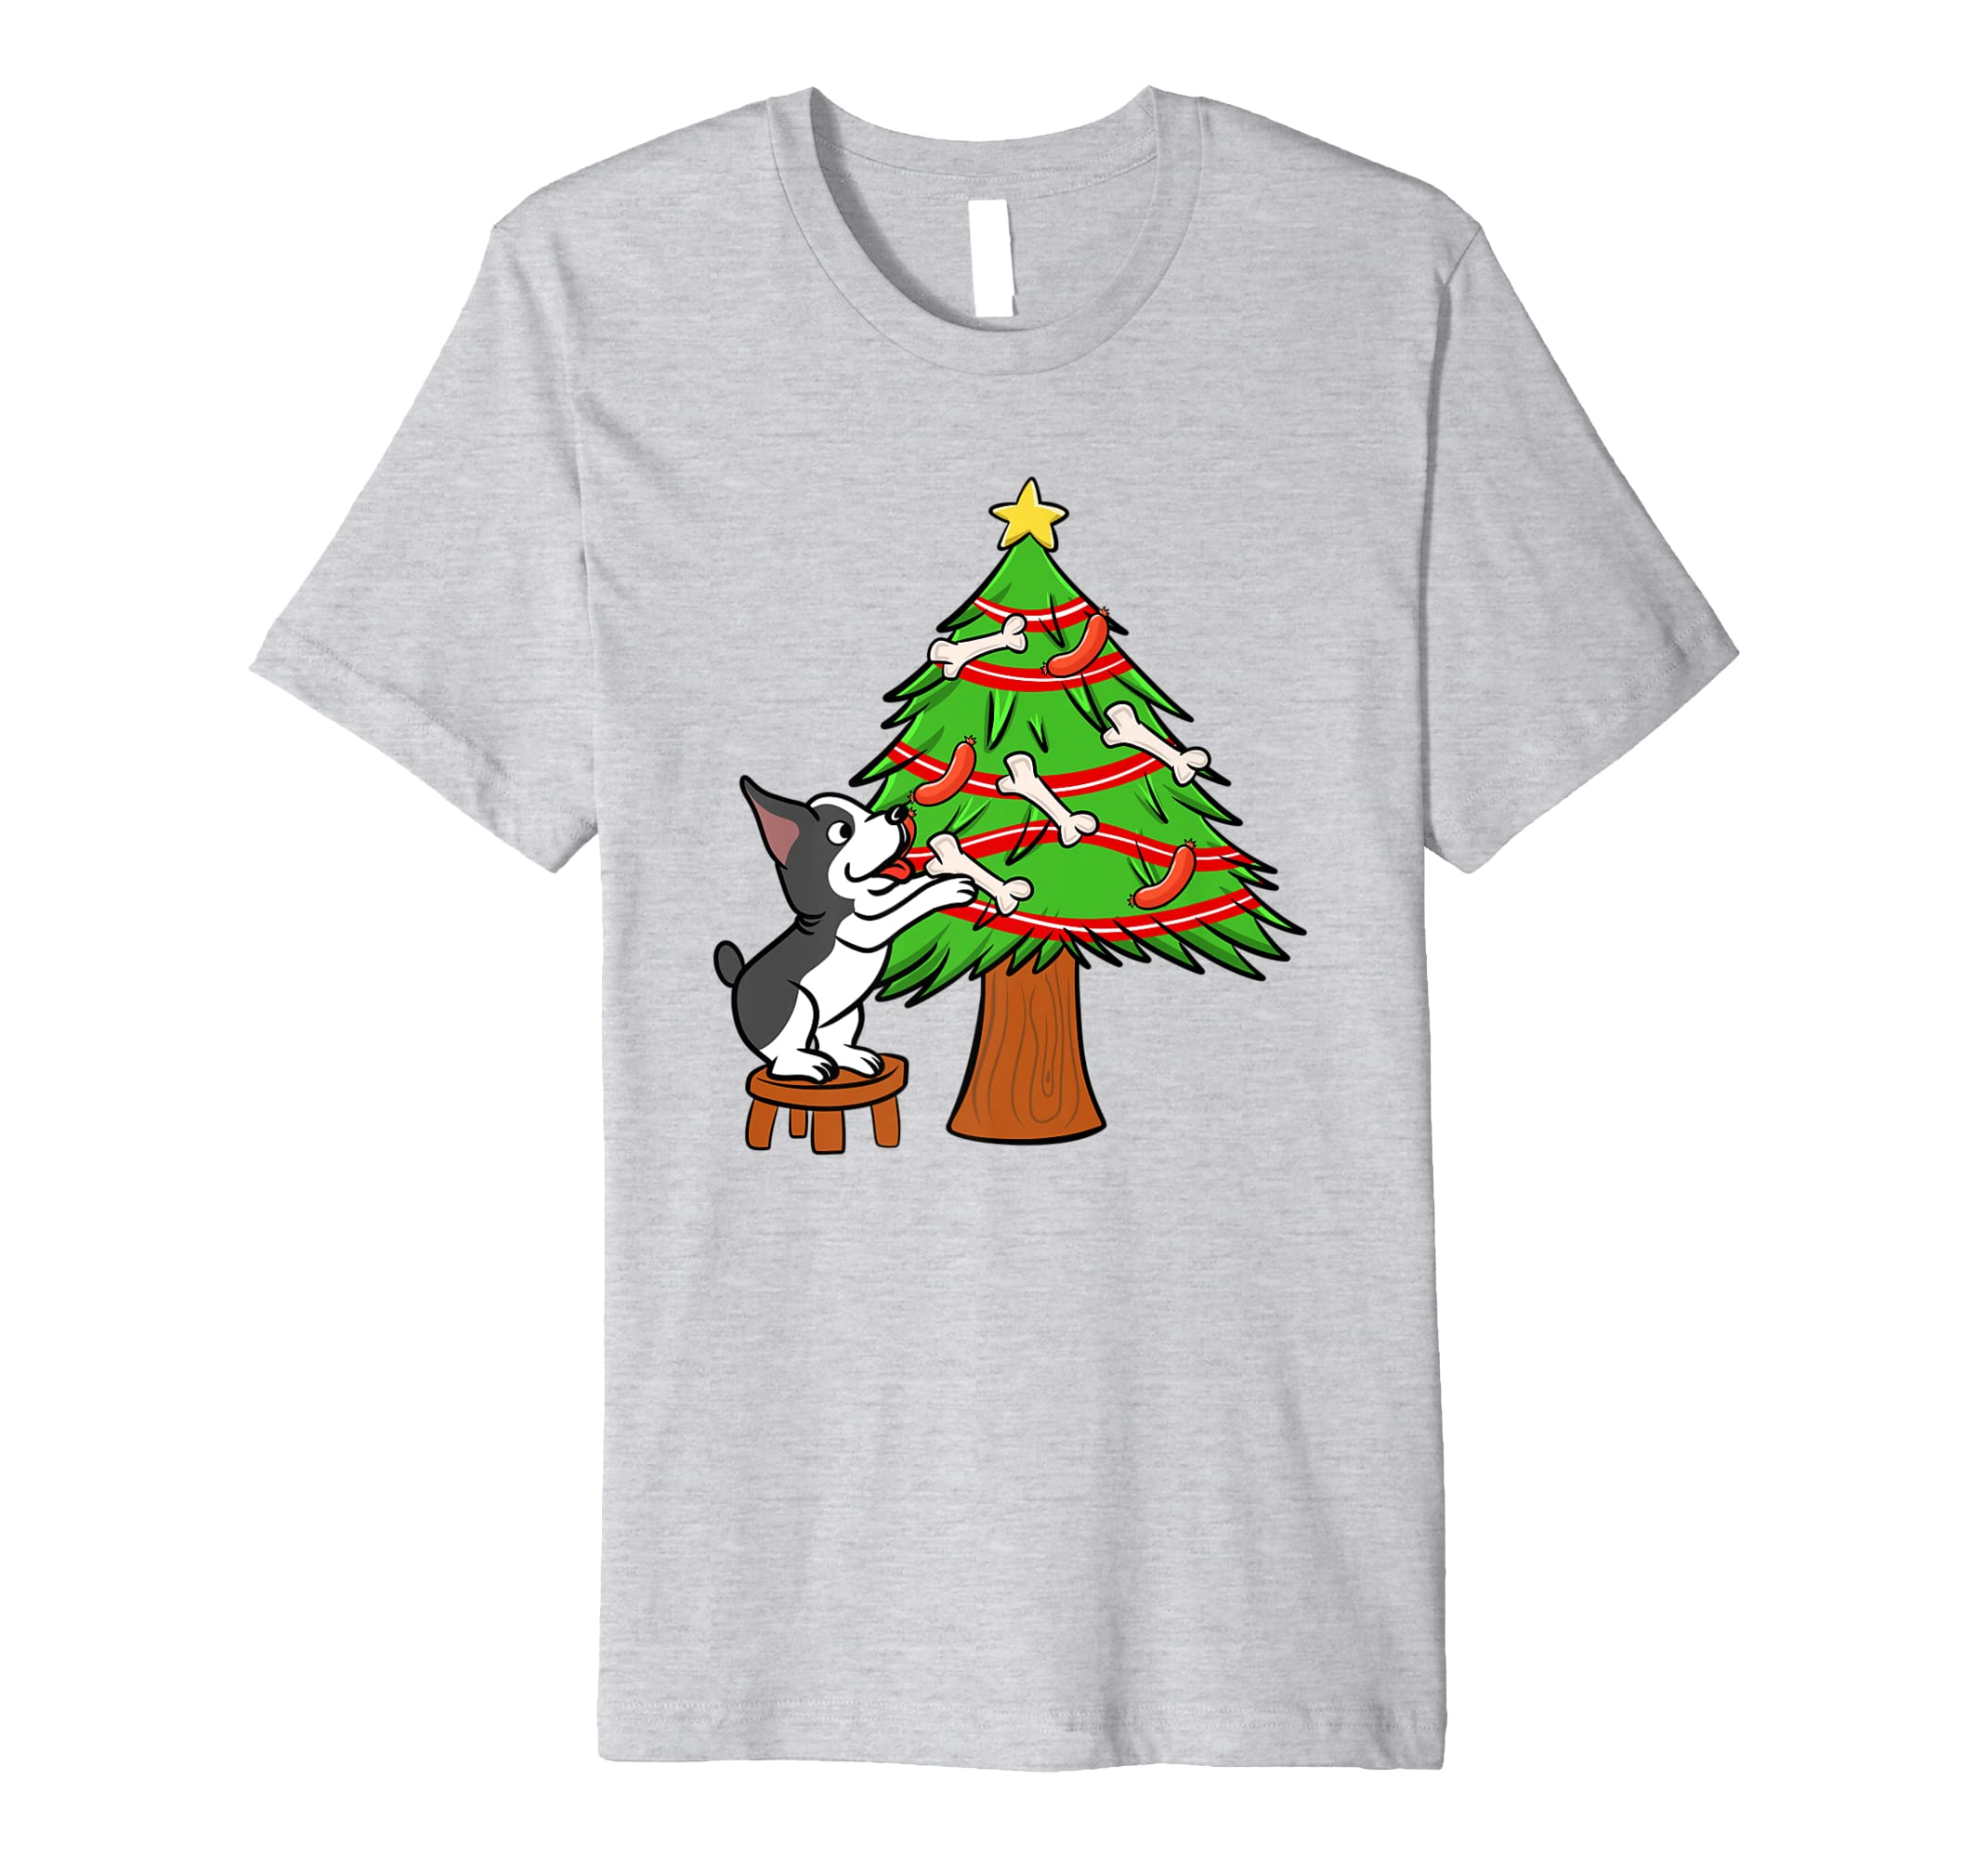 Boston Terrier Hund Weihnachtsbaum Weihnachten T-Shirt: Amazon.de ...